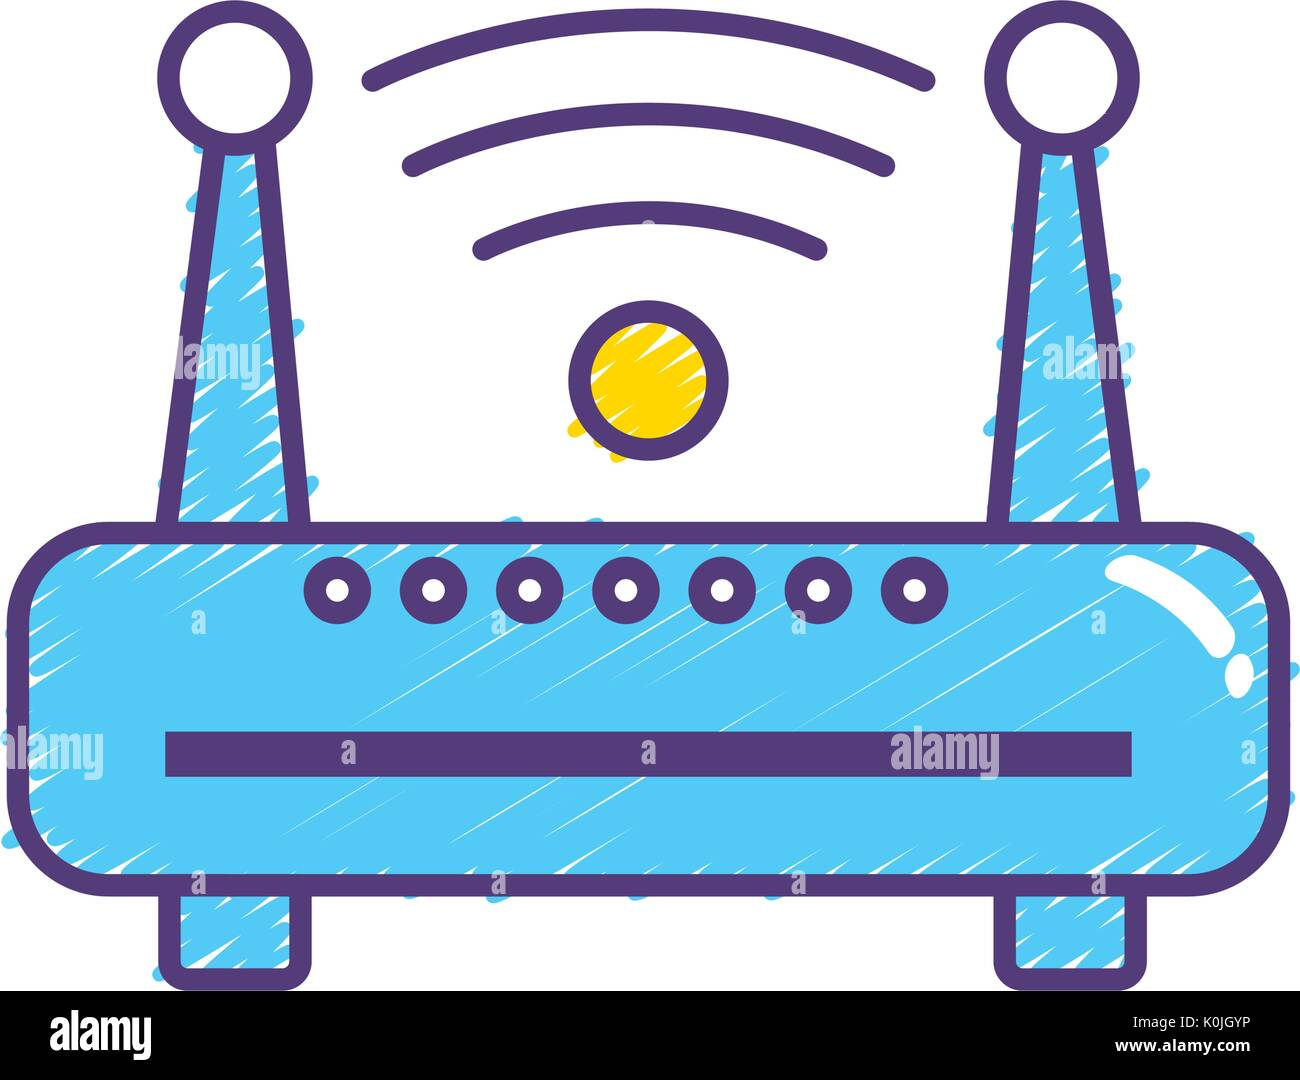 router wifi connection network technology - Stock Image